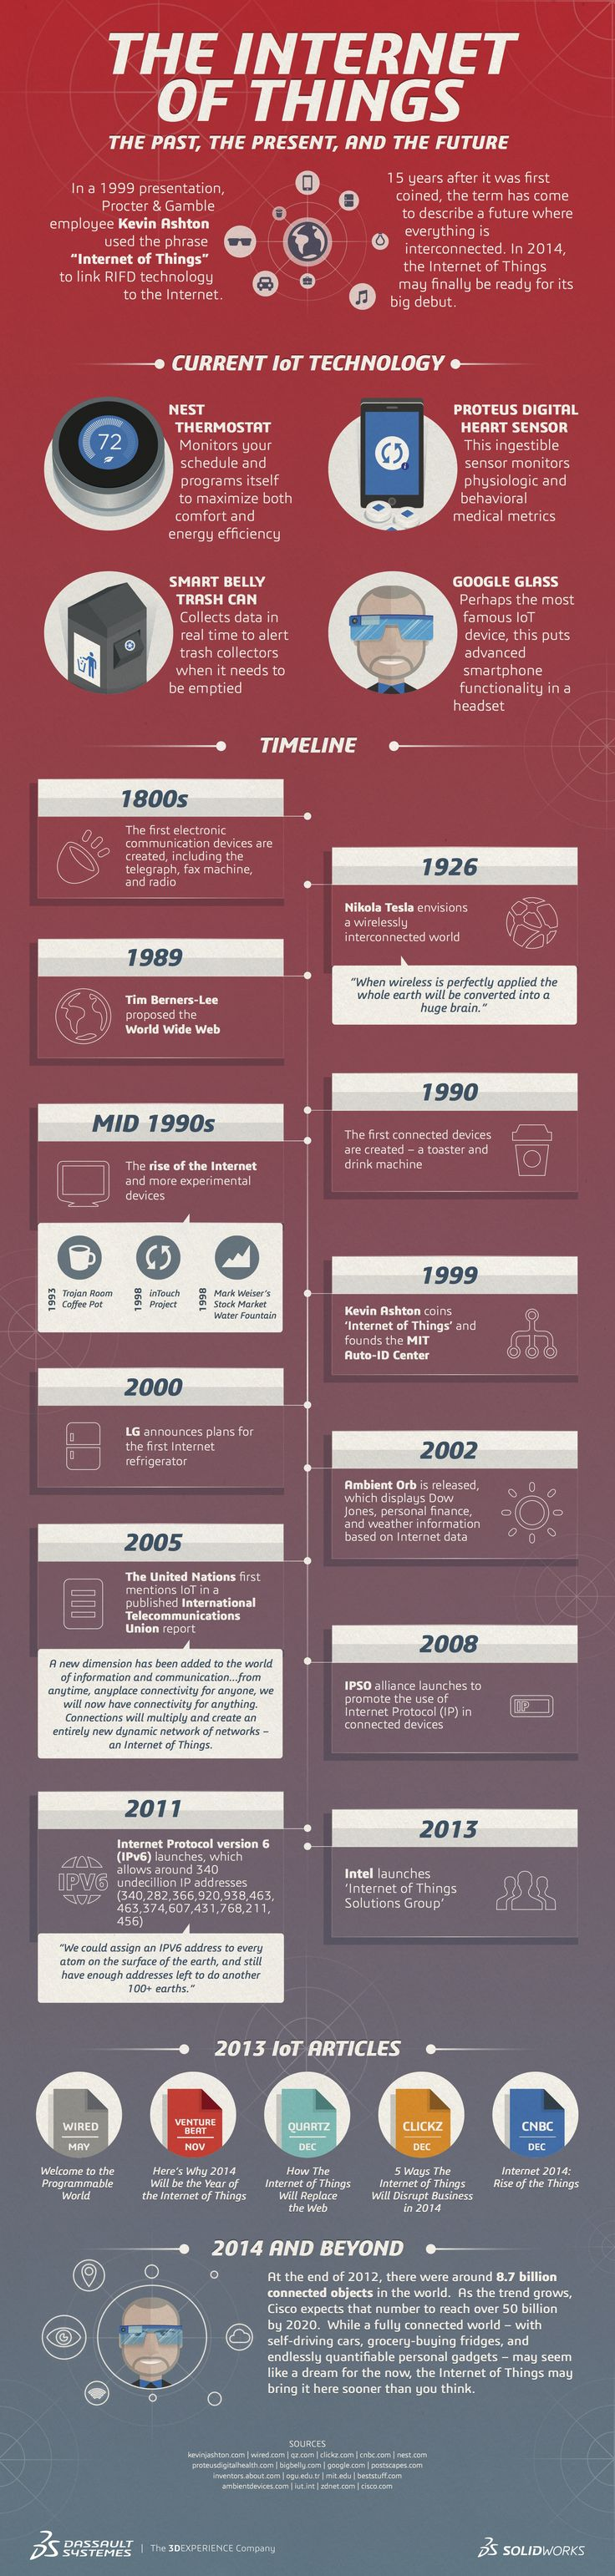 History of the Internet of Things #IoT